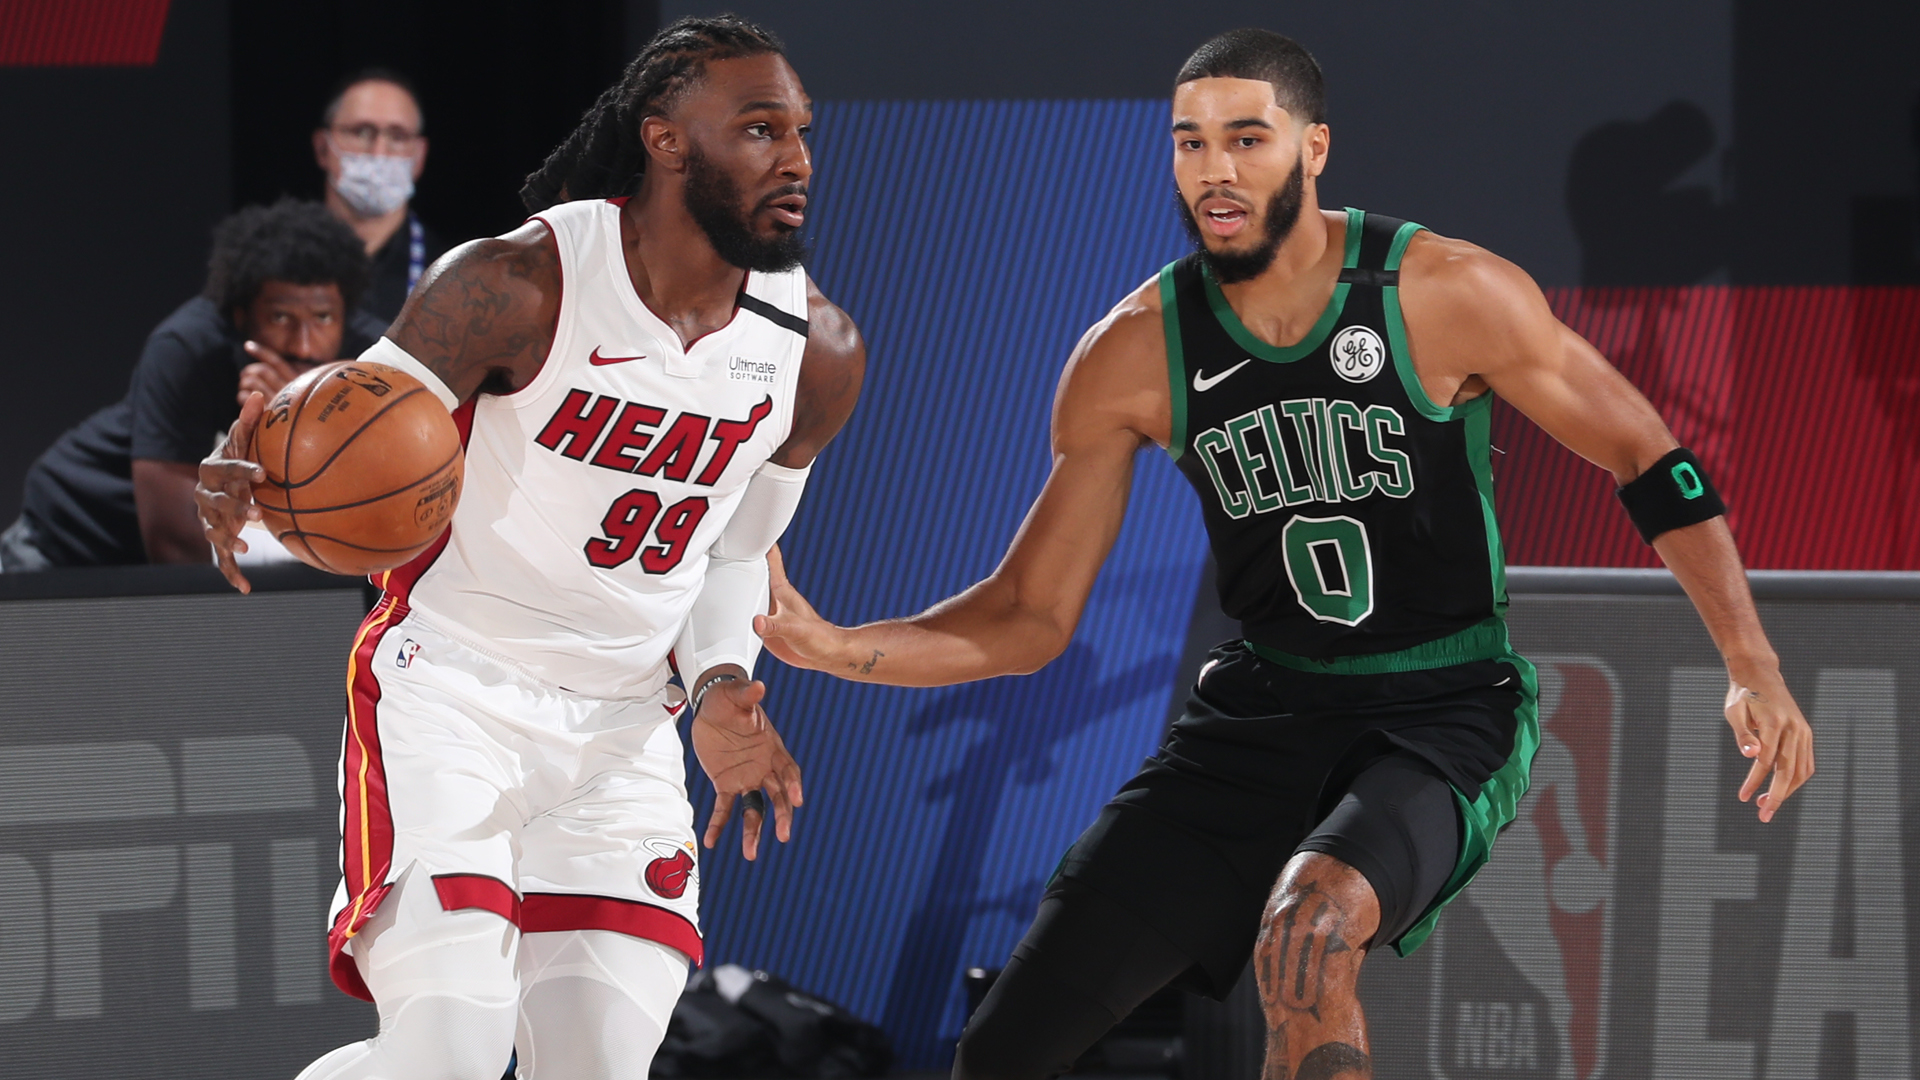 Heat Take 1-0 Lead With Close Win In Series Opener